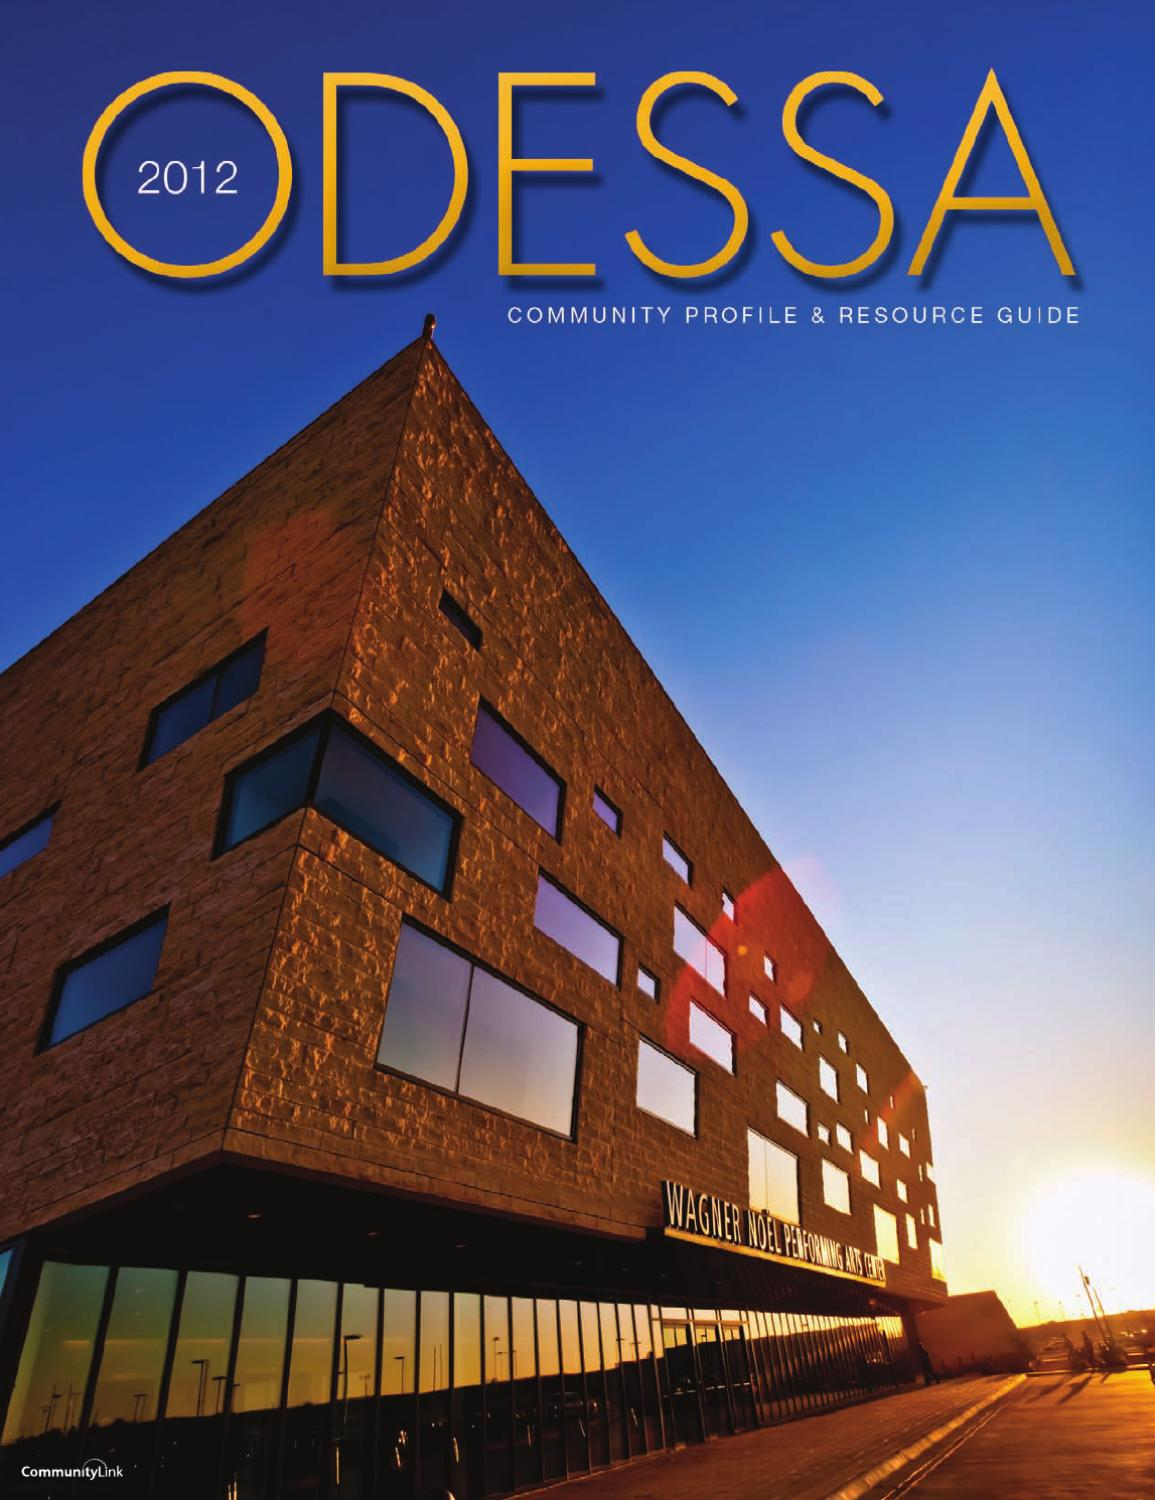 odessa tx community profile and resource guide by odessa tx 2014 community profile and resource guide